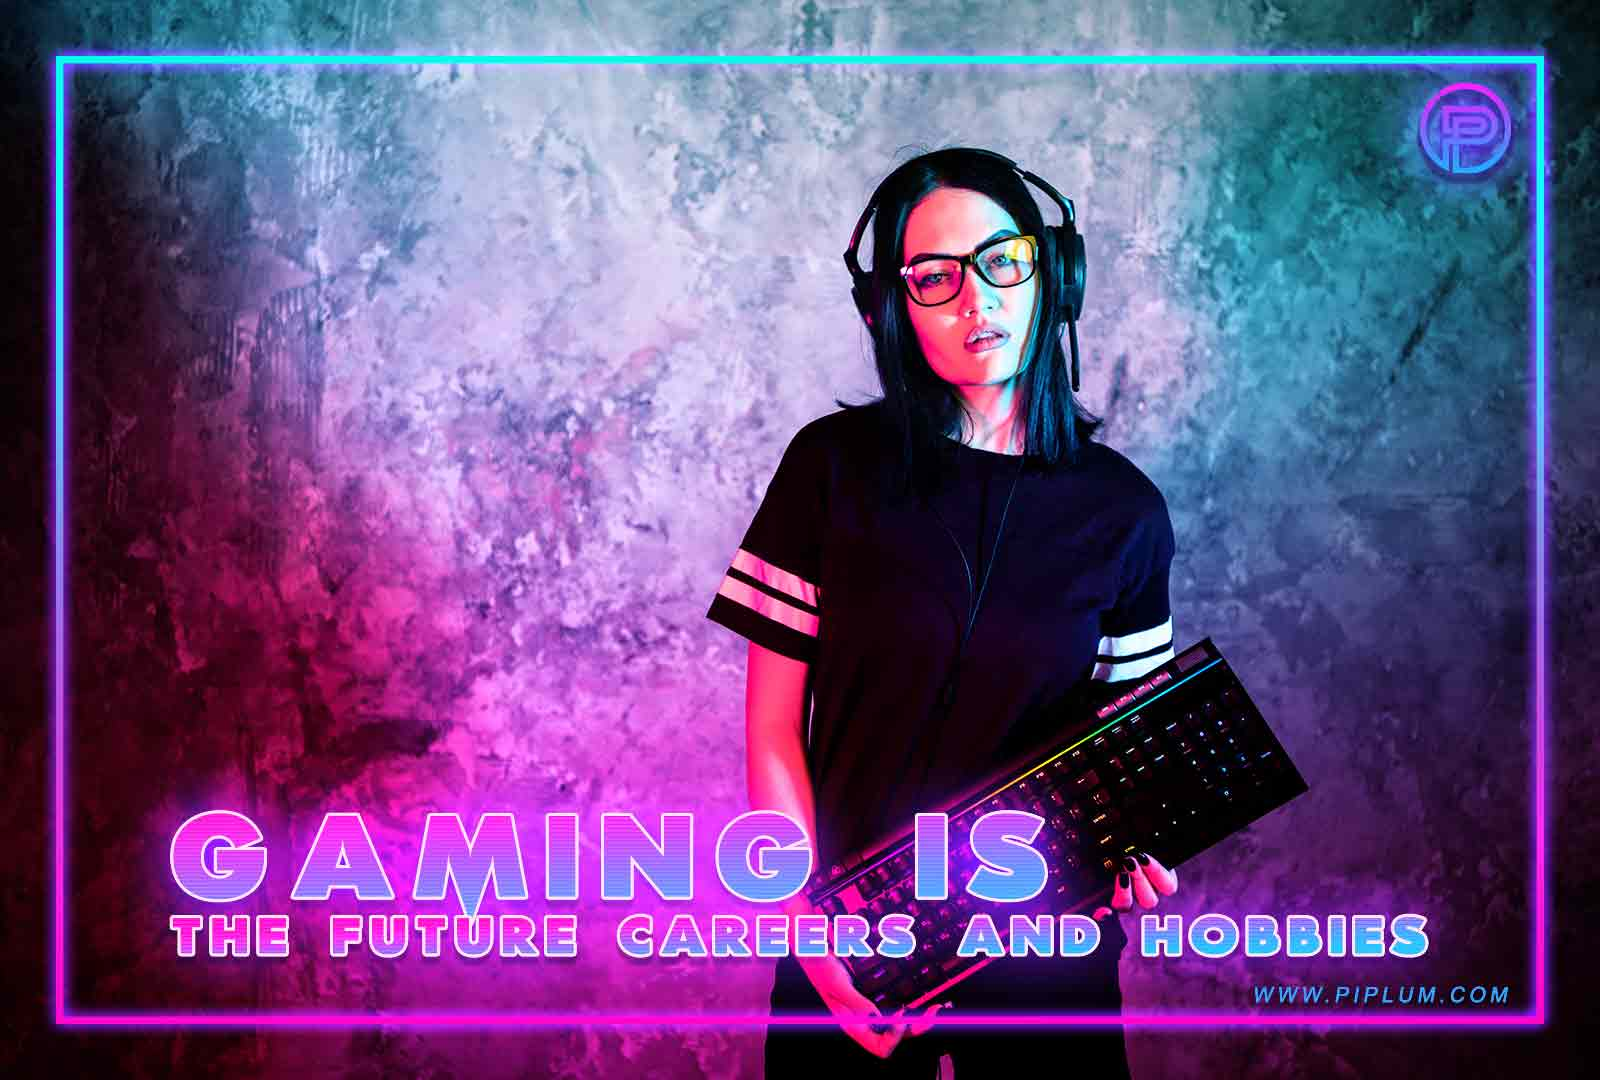 Gaming is the future careers and hobbies. Inspirational quote for gamers.